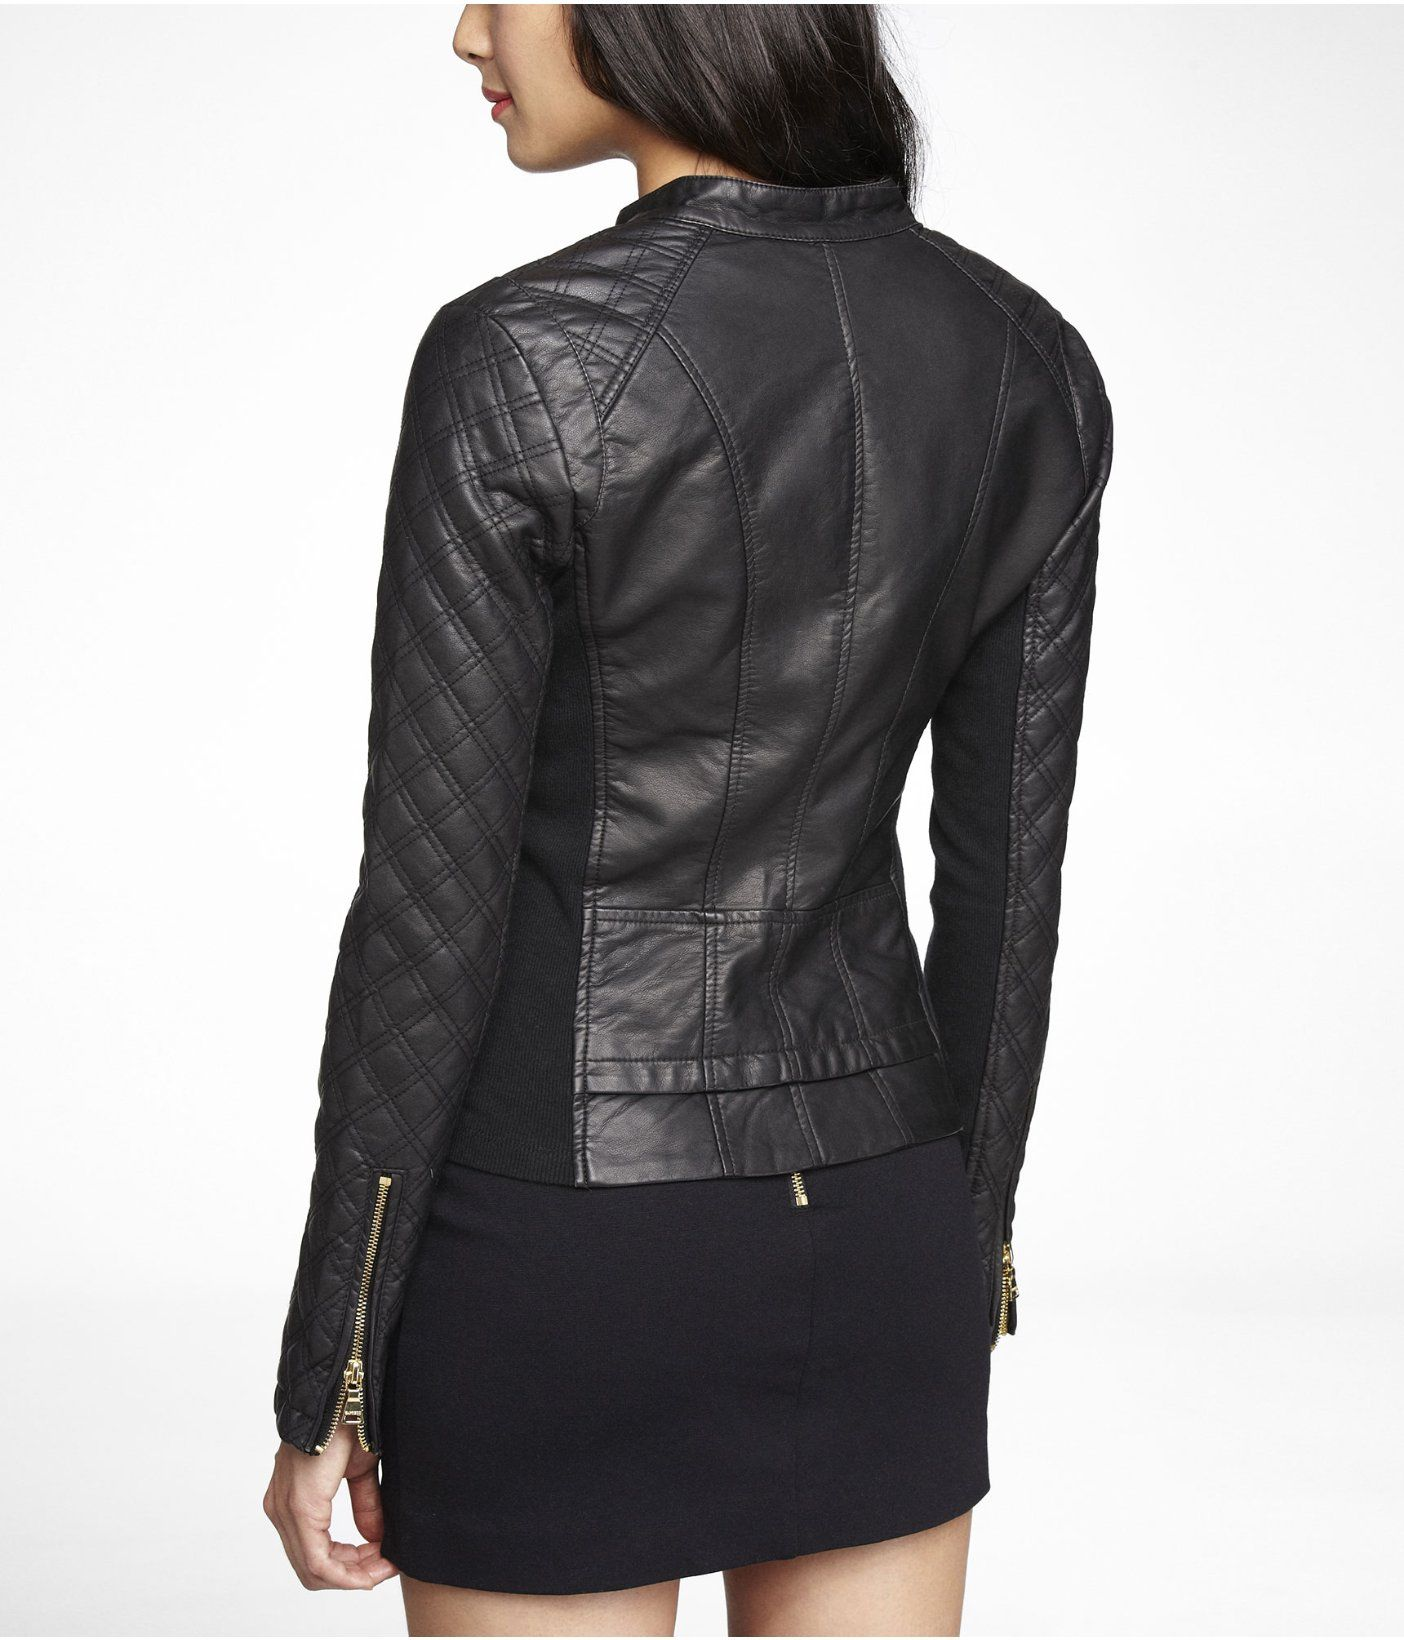 MINUS THE) LEATHER QUILTED MOTO JACKET | Express | Me | Pinterest ... : express quilted leather jacket - Adamdwight.com